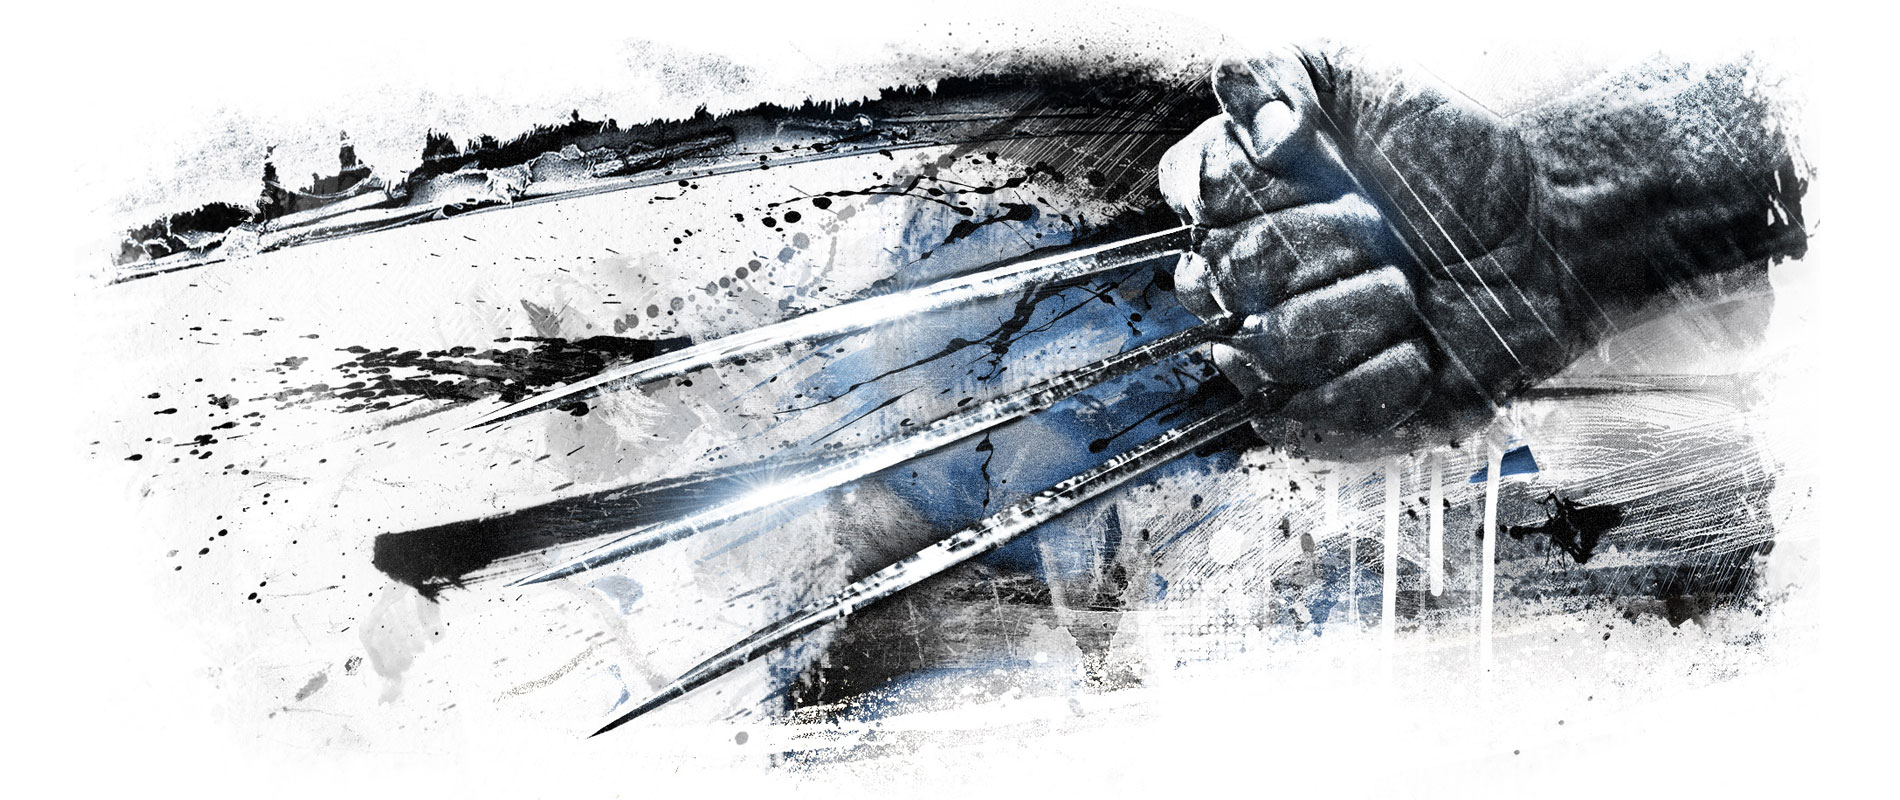 The wolverine gets a new trailer and some ink wash artworks